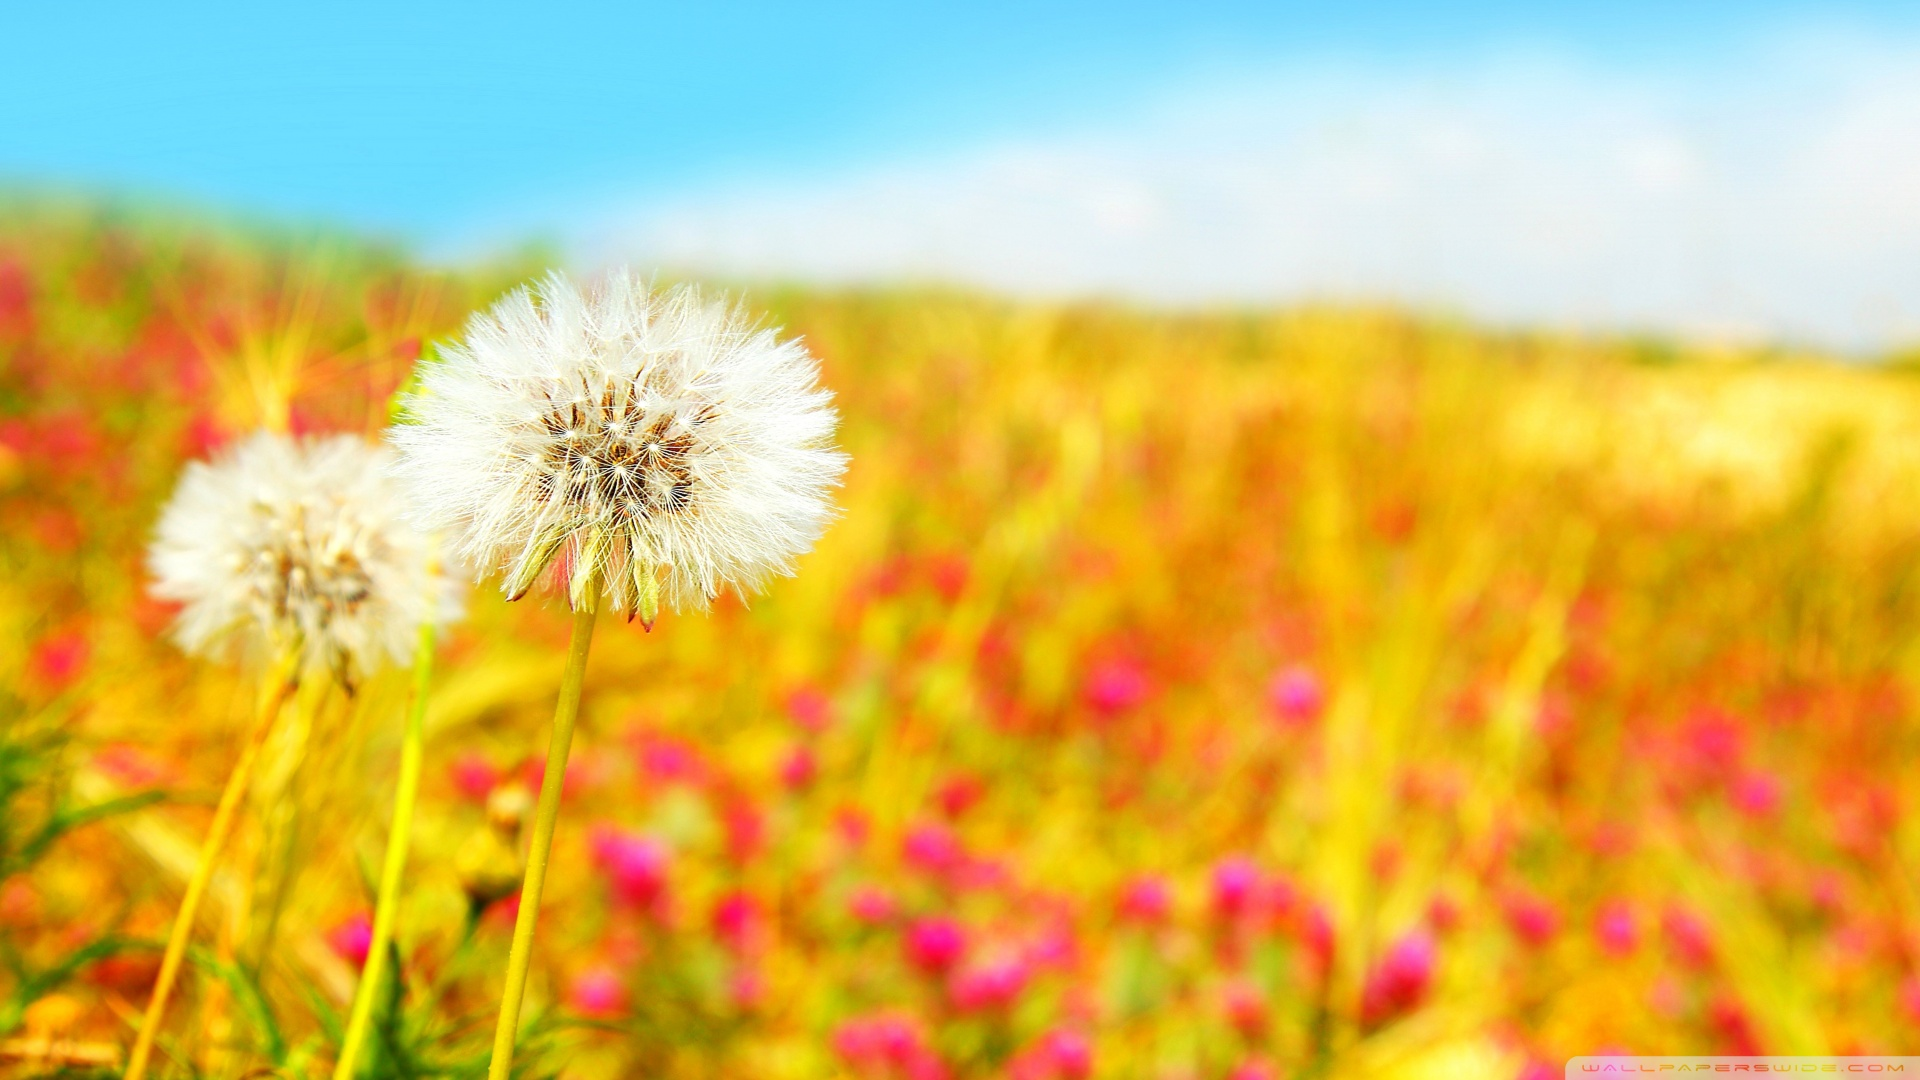 Blowing Dandelion Wallpaper Spring dandelions wallpaper 1920x1080